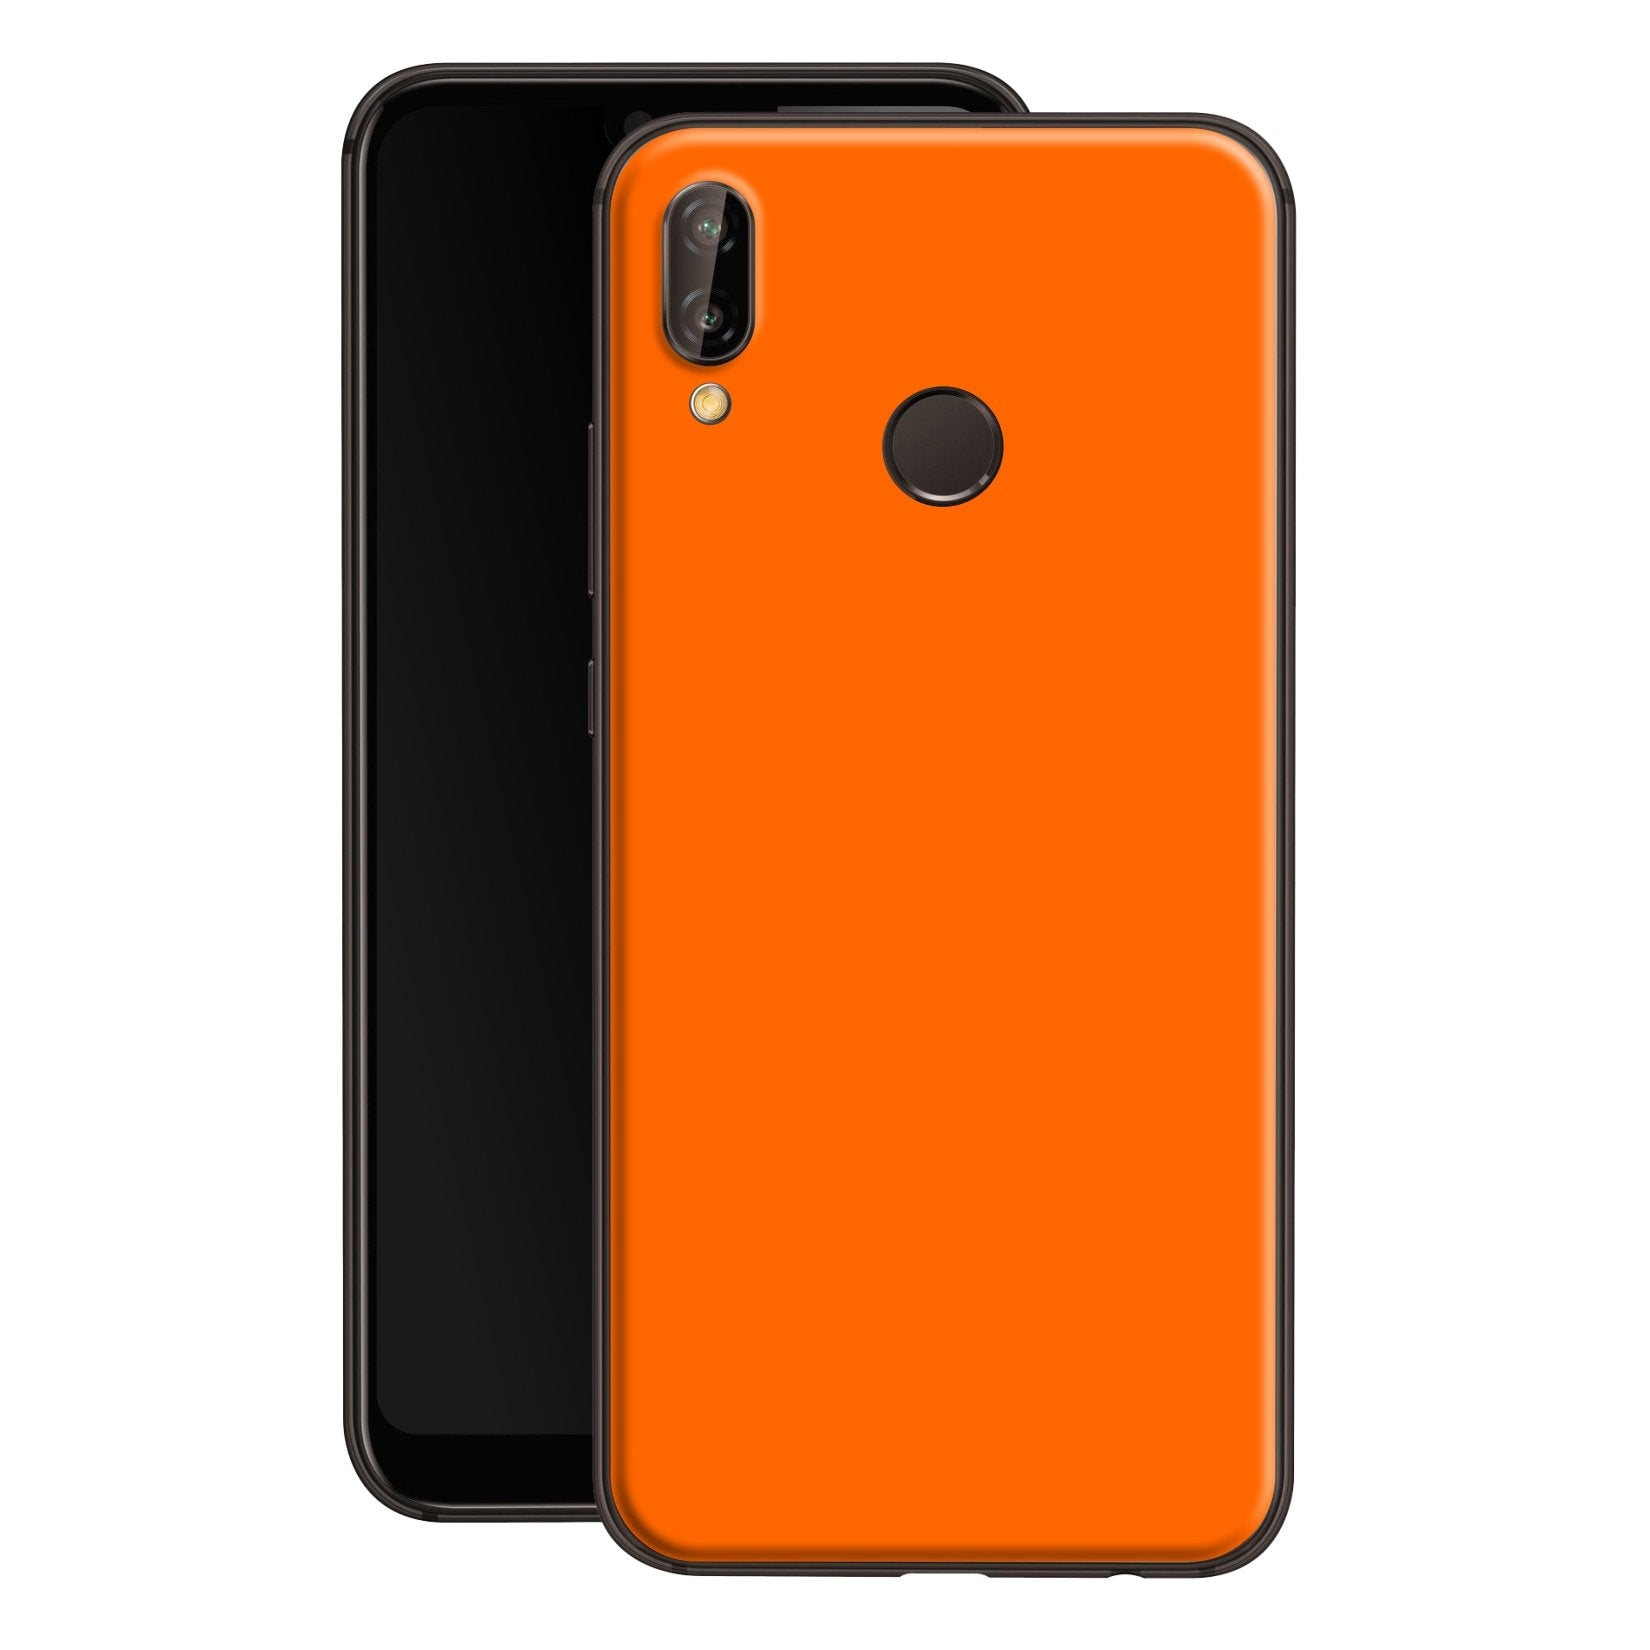 Huawei P20 LITE Orange Glossy Gloss Finish Skin, Decal, Wrap, Protector, Cover by EasySkinz | EasySkinz.com